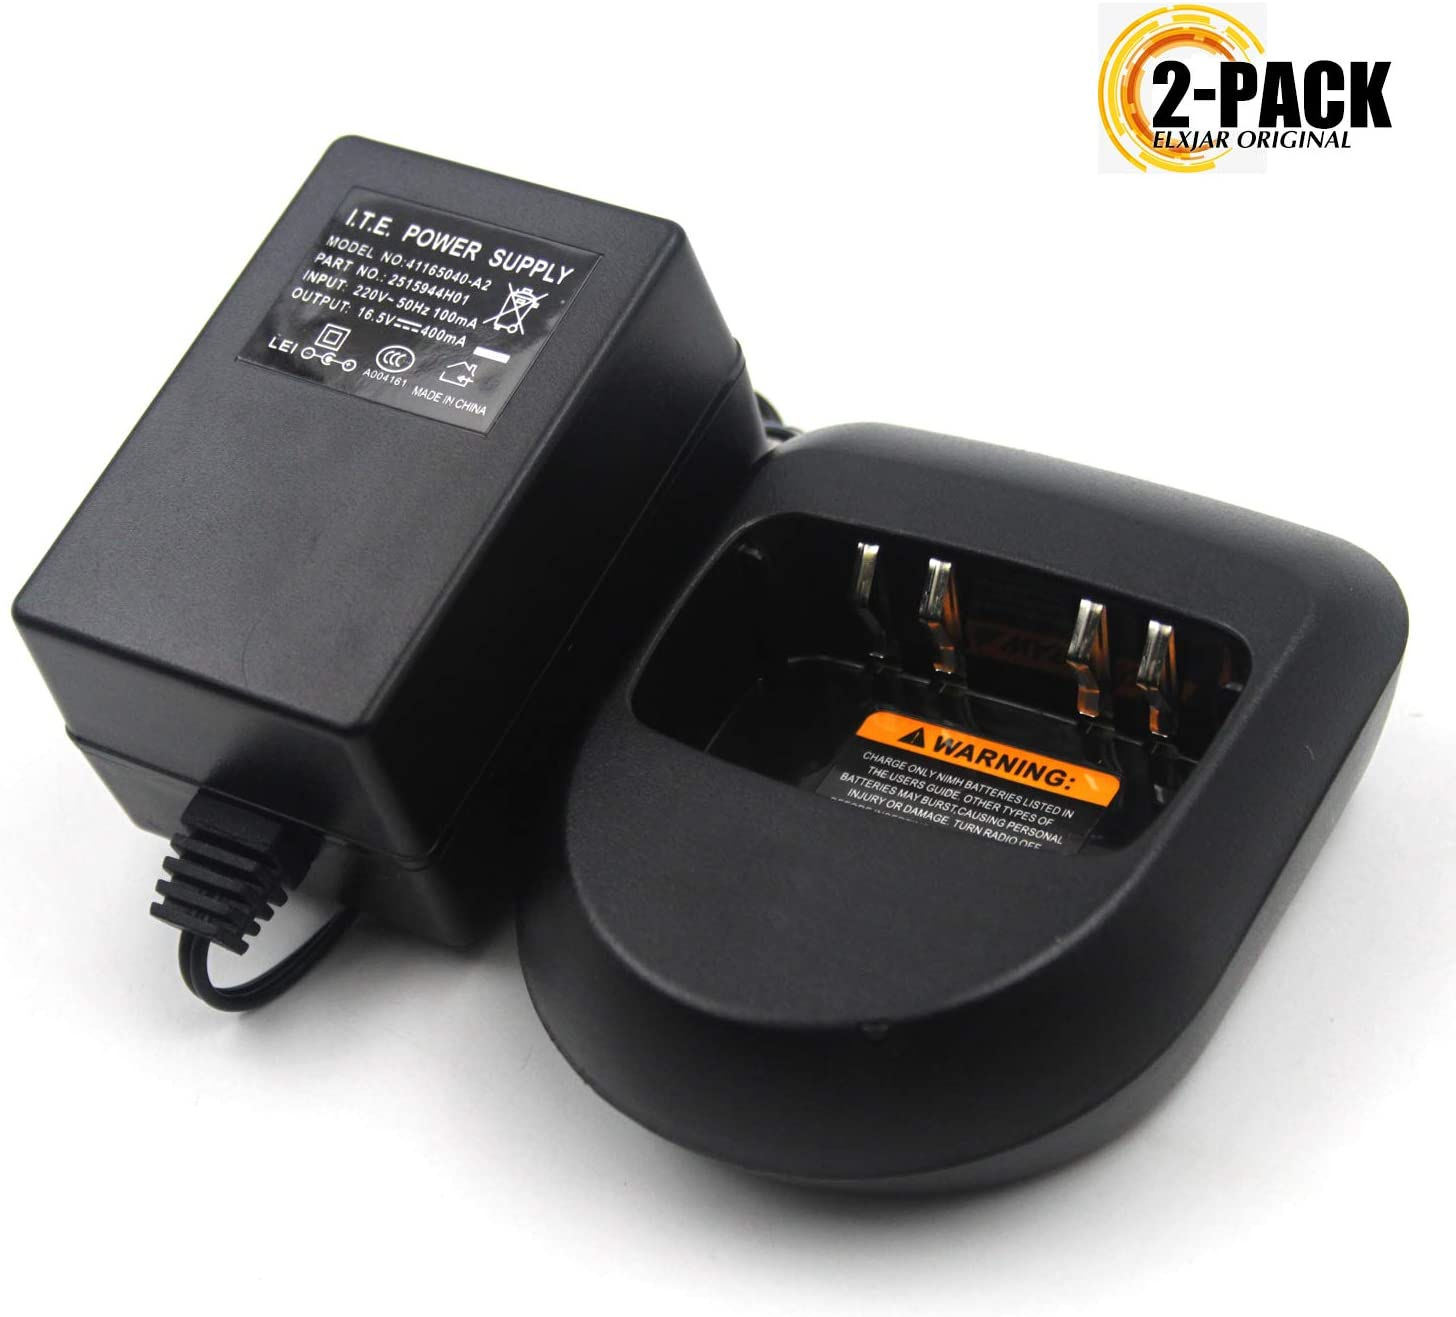 (2-Pack) PMLN4685B Ni-MH Ni-CD Li-ion 110V~240V Battery Rapid Quick Desktop Charger Charging Dock for Motorola Radio A6 A8 MagOne BPR40 BC130 Two-Way Radio PMLN4822AR PMLN4682AR PMLN5041A